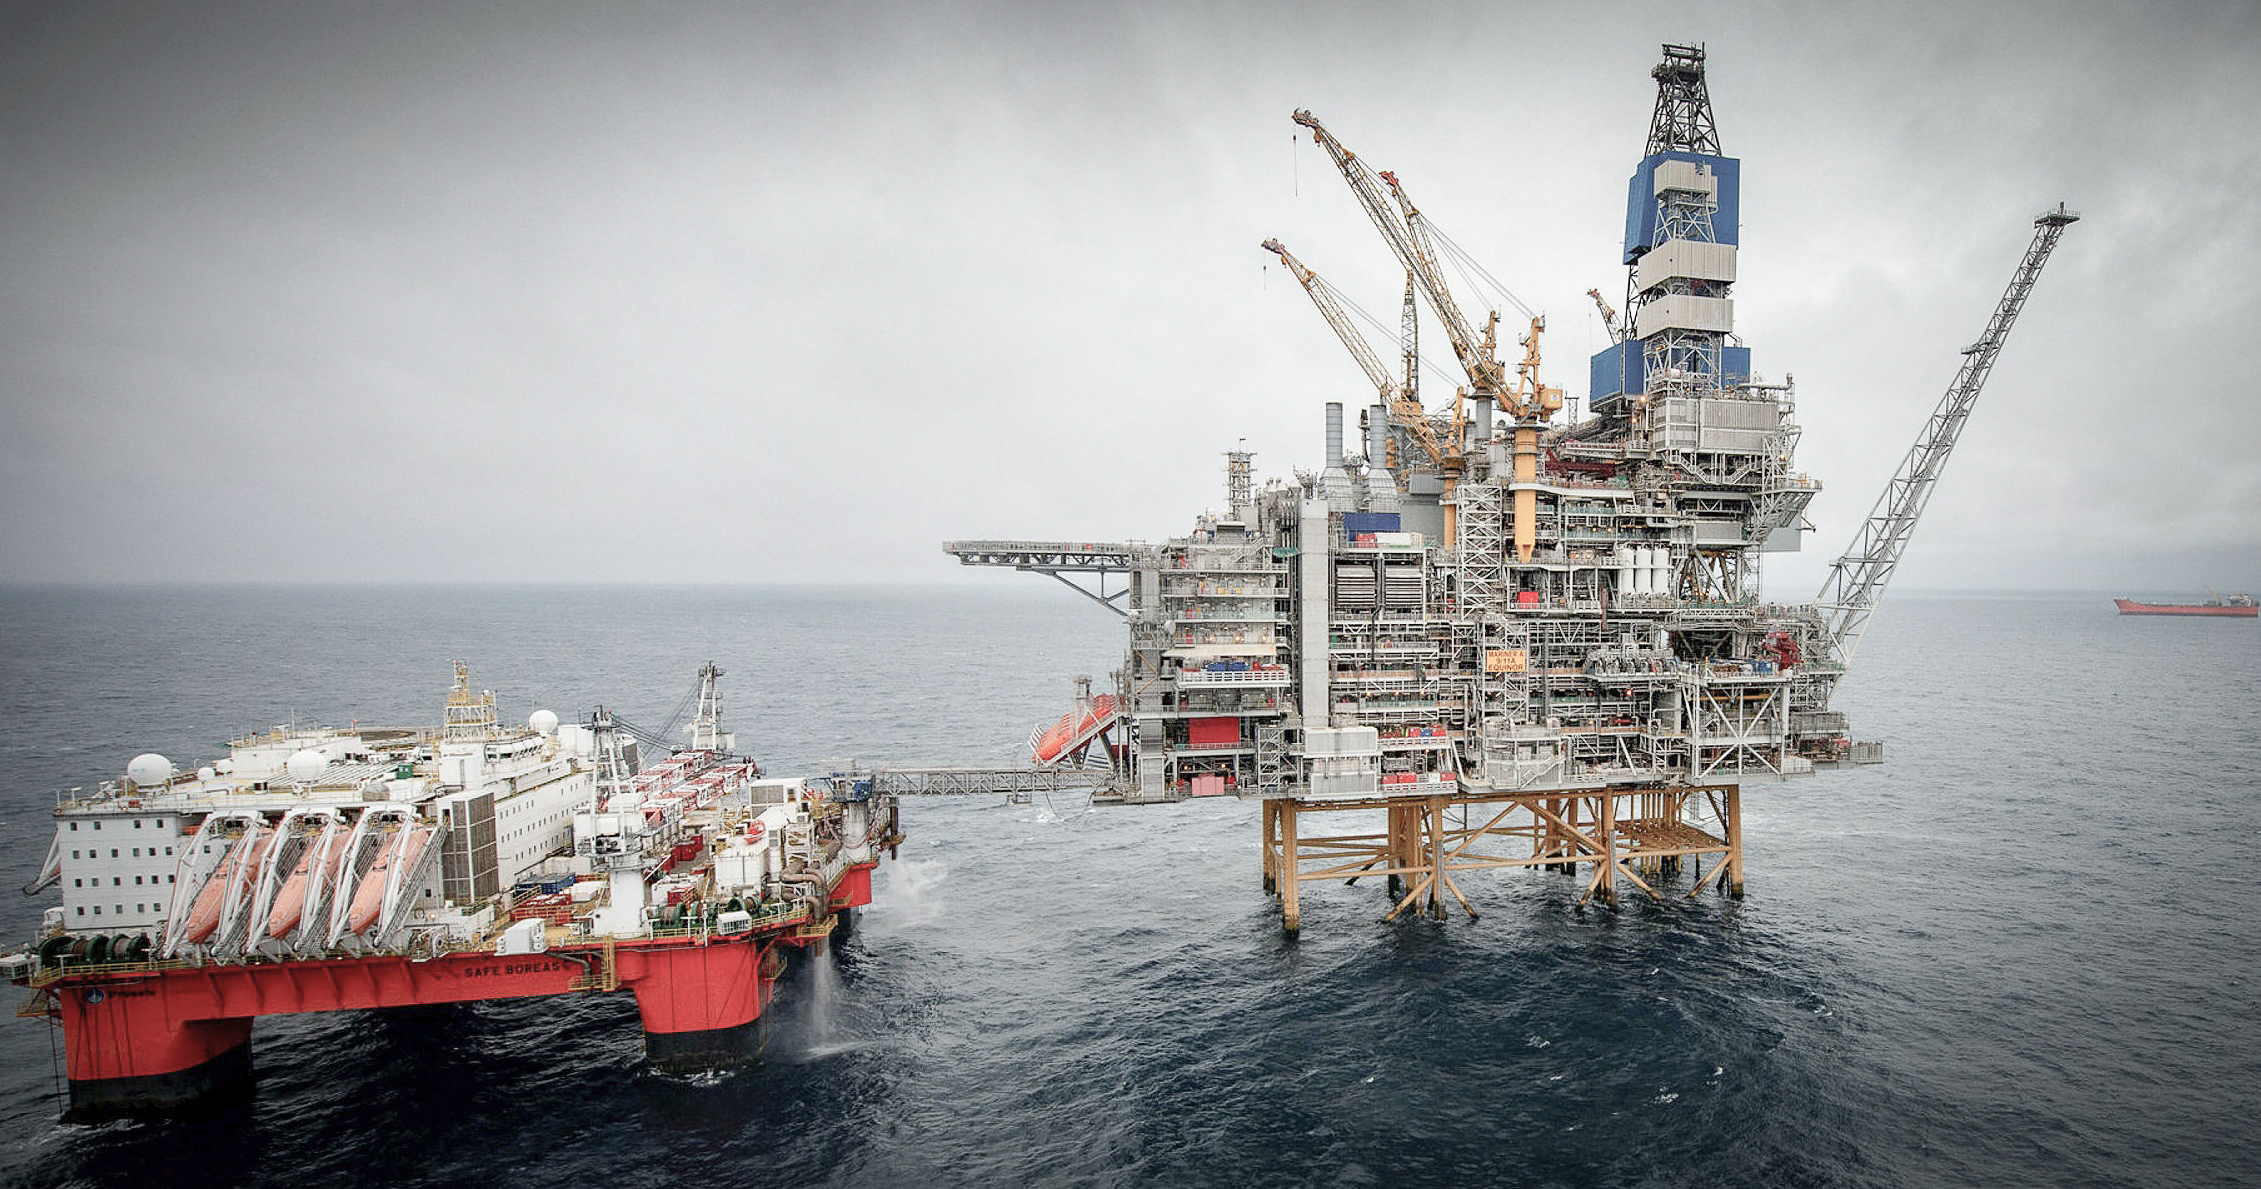 A North Sea oil rig on a grey, cloudy day